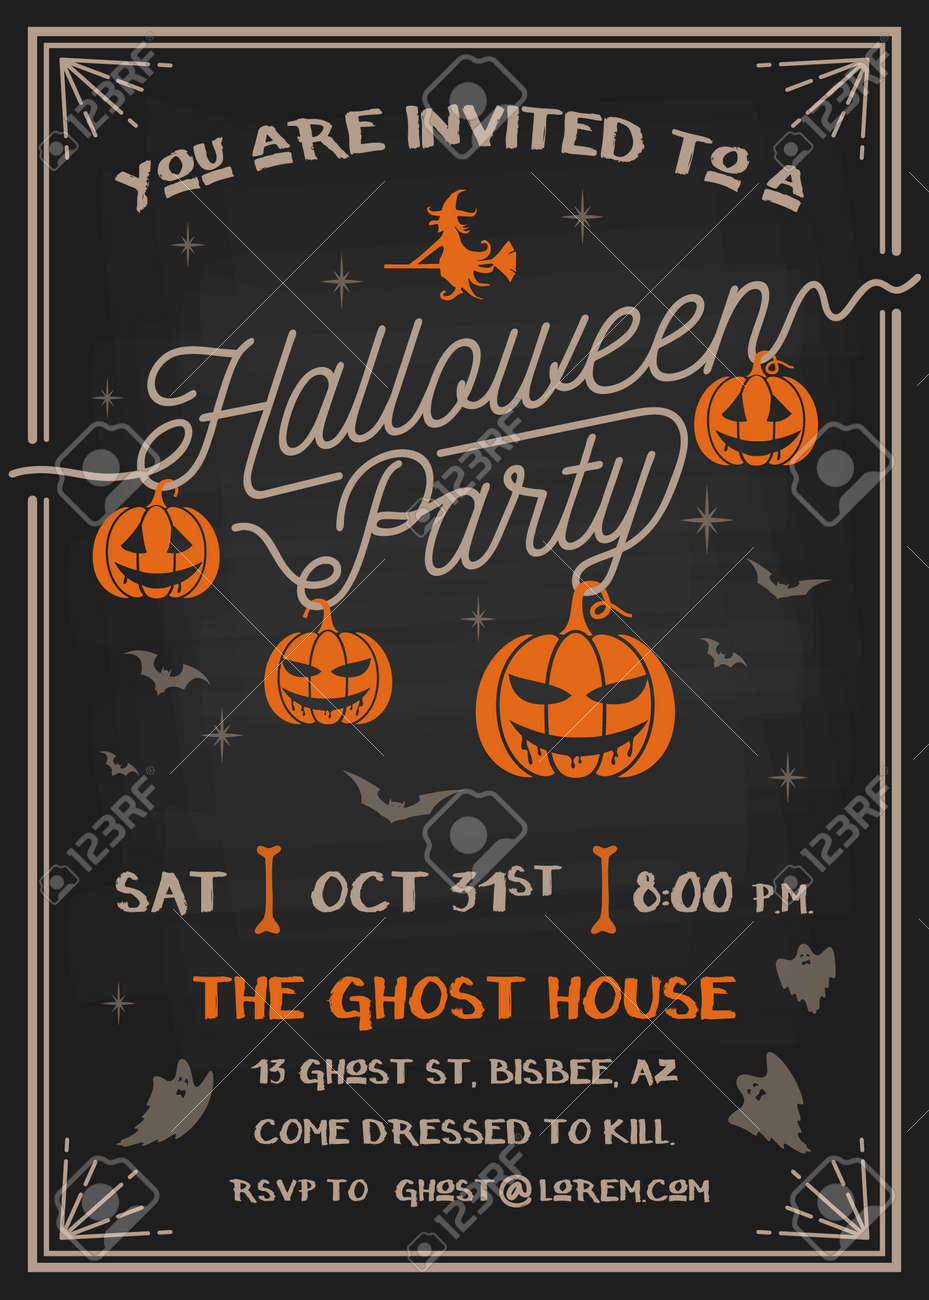 Typography Halloween Party Invitation Card With Scary Pumpkins ...